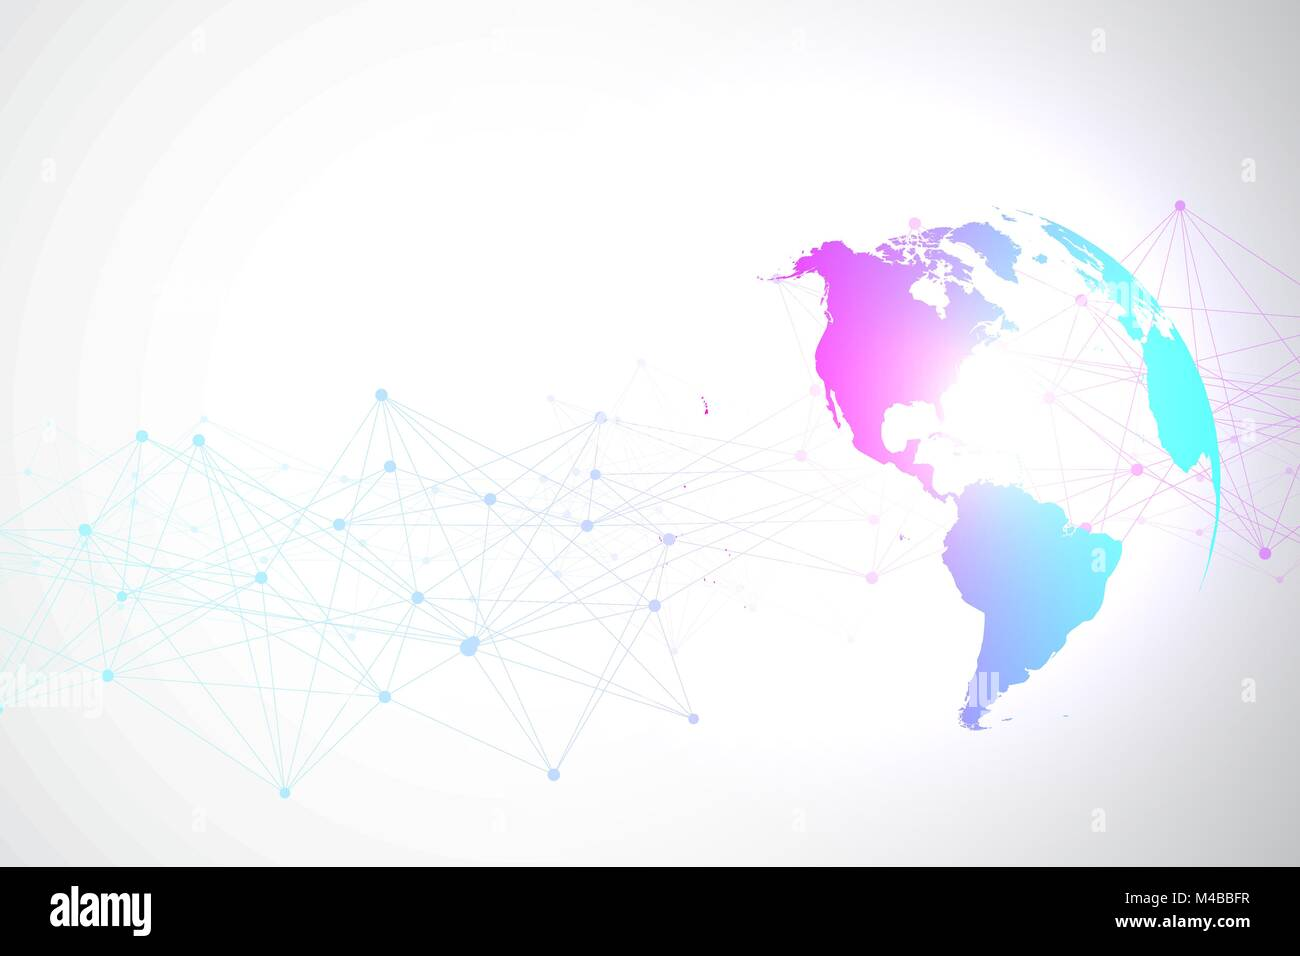 World map point with global technology networking concept digital world map point with global technology networking concept digital data visualization lines plexus big data background communication scientific vector gumiabroncs Gallery